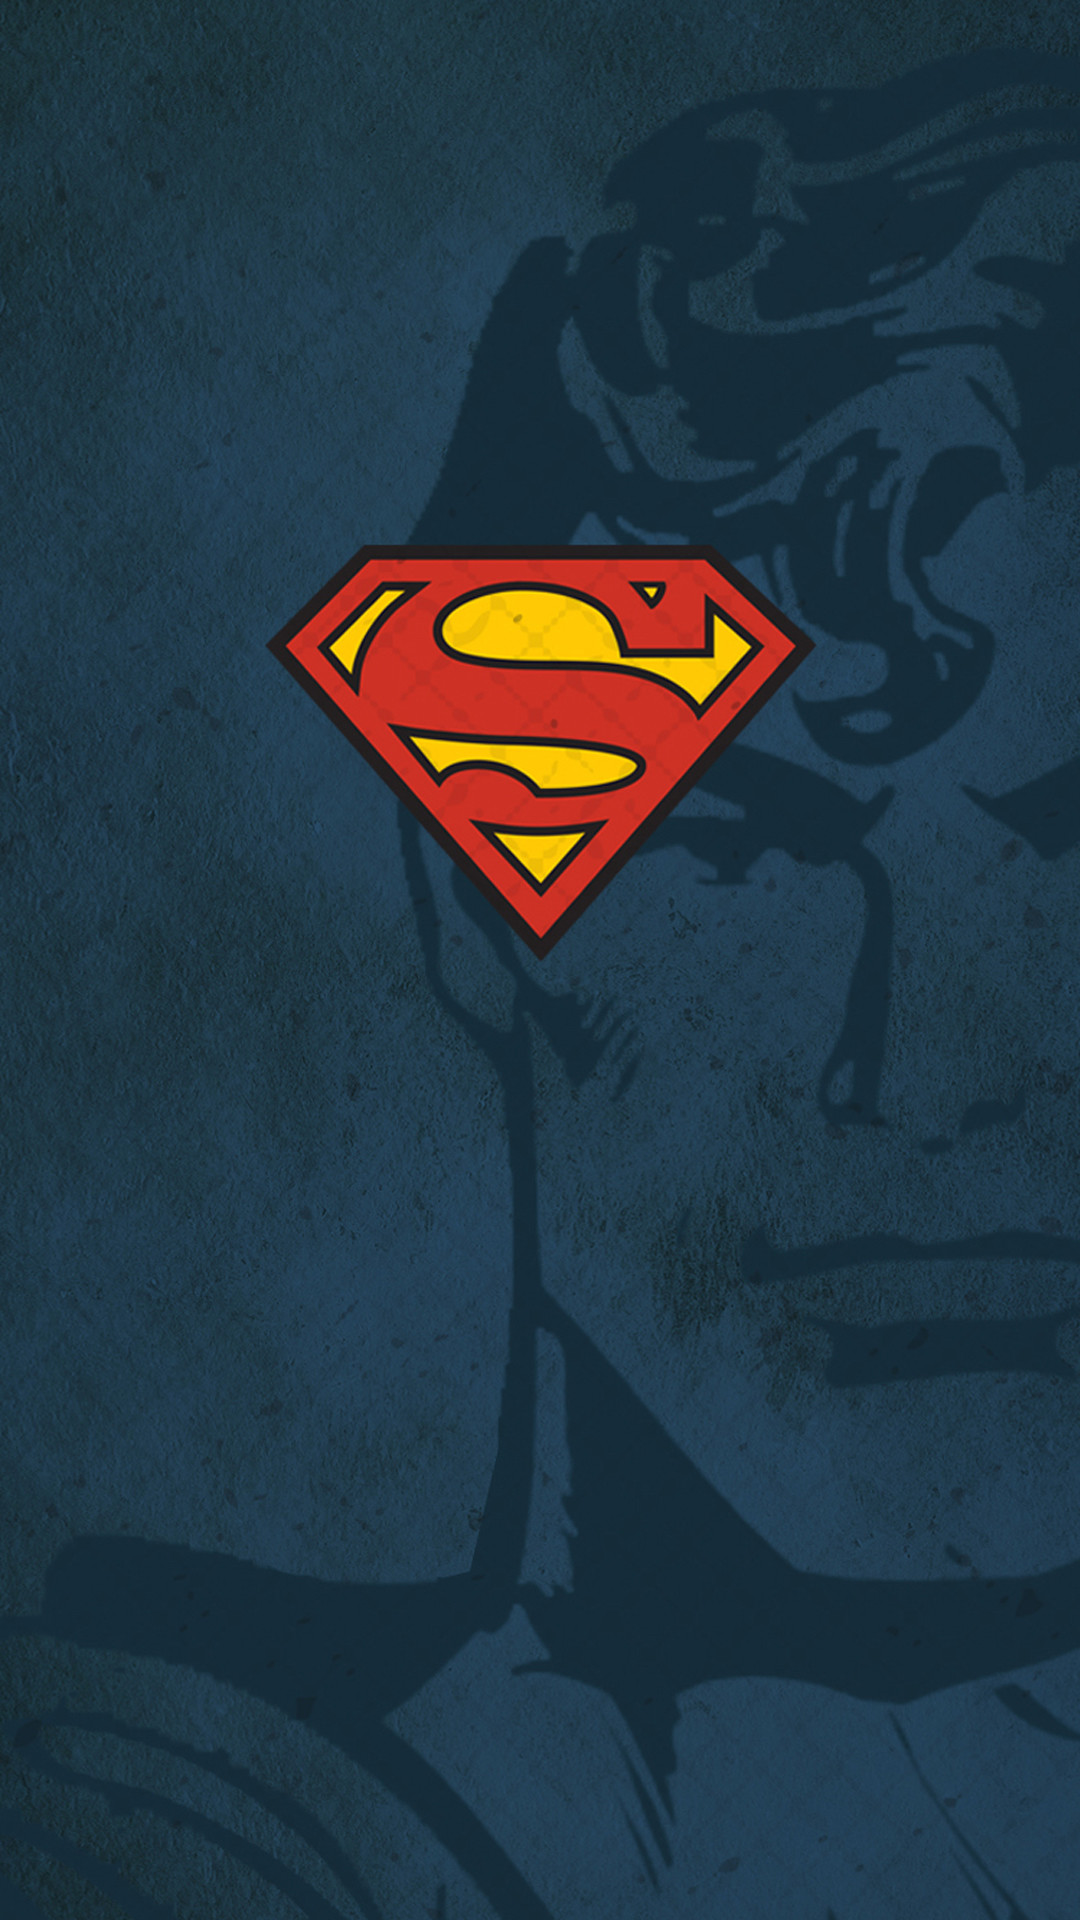 1080x1920 Superman 01 - iPhone 6 Plus. Superman SymbolSuperman ComicSuperman  LogoBatmanSuperman WallpaperIphone ...